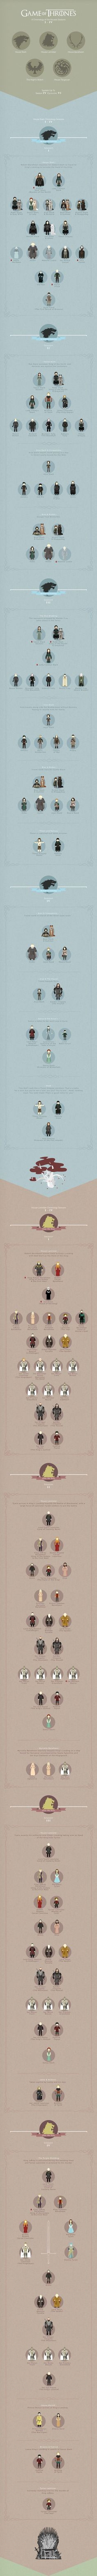 http://www.nerdist.com/wp-content/uploads/2014/05/game_of_thrones_infographic_fishfingerEDIT.jpg